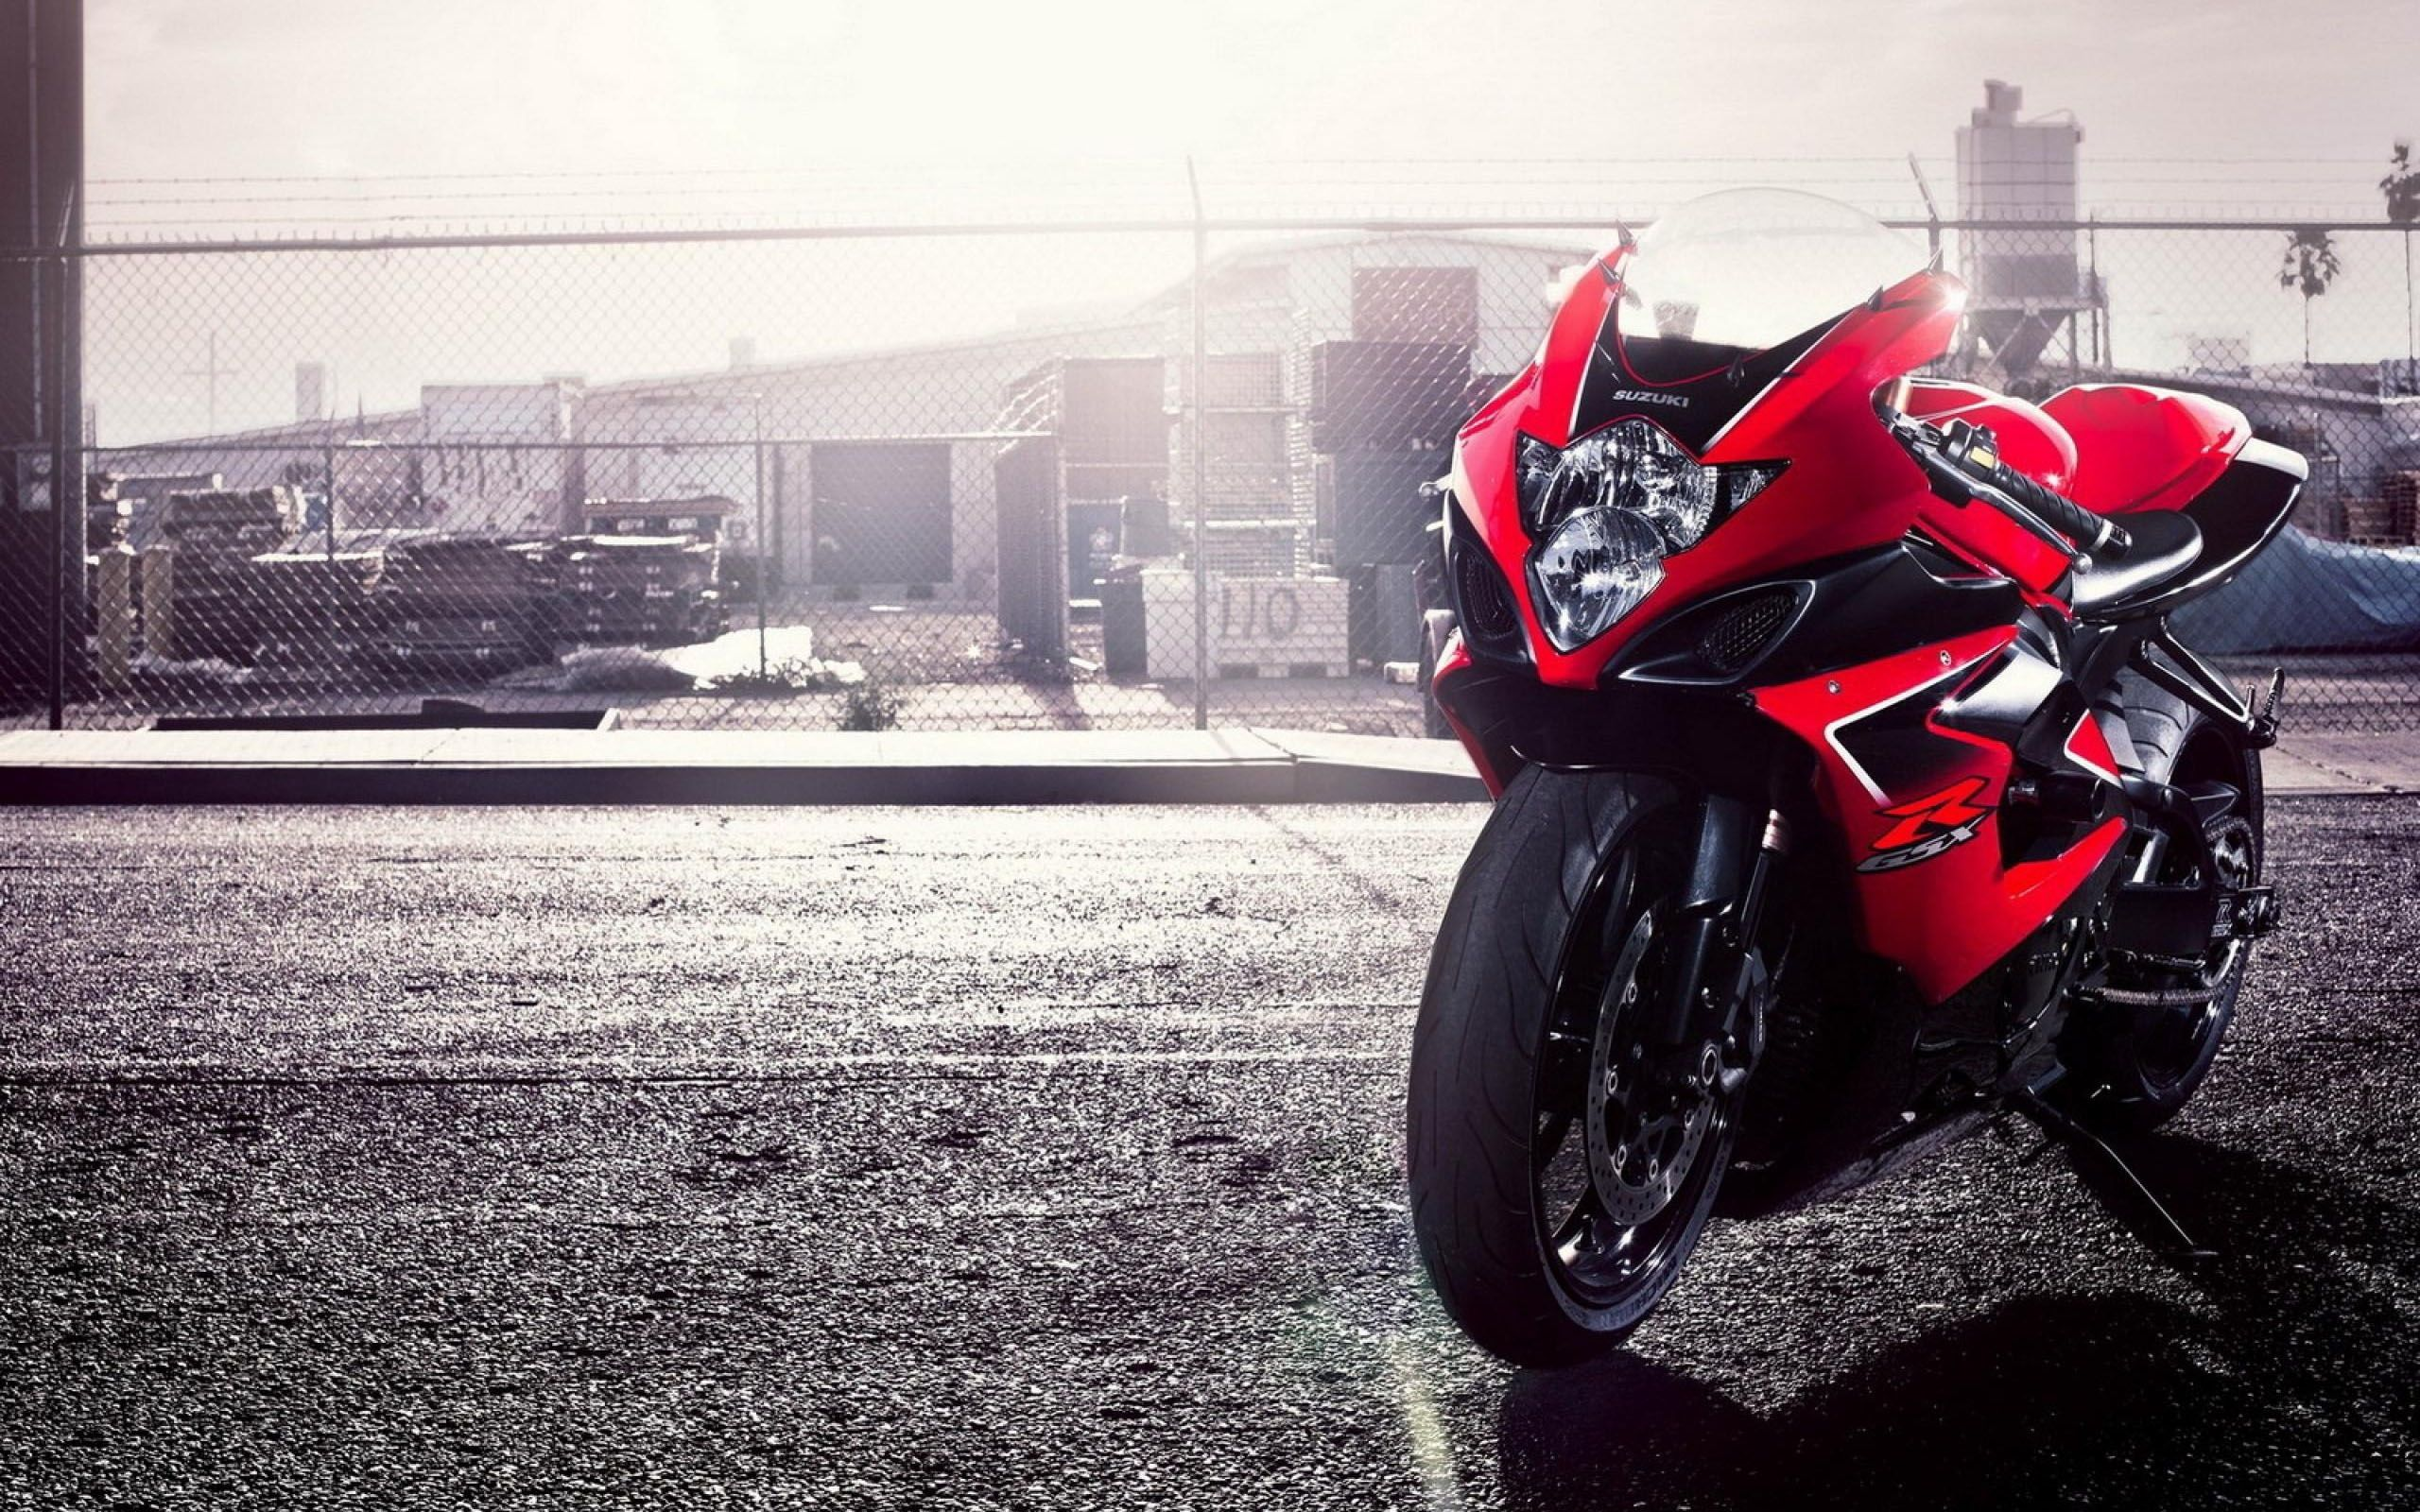 Bike Wallpaper 24 Motorcycle Wallpaper Suzuki Bikes Suzuki Gsxr